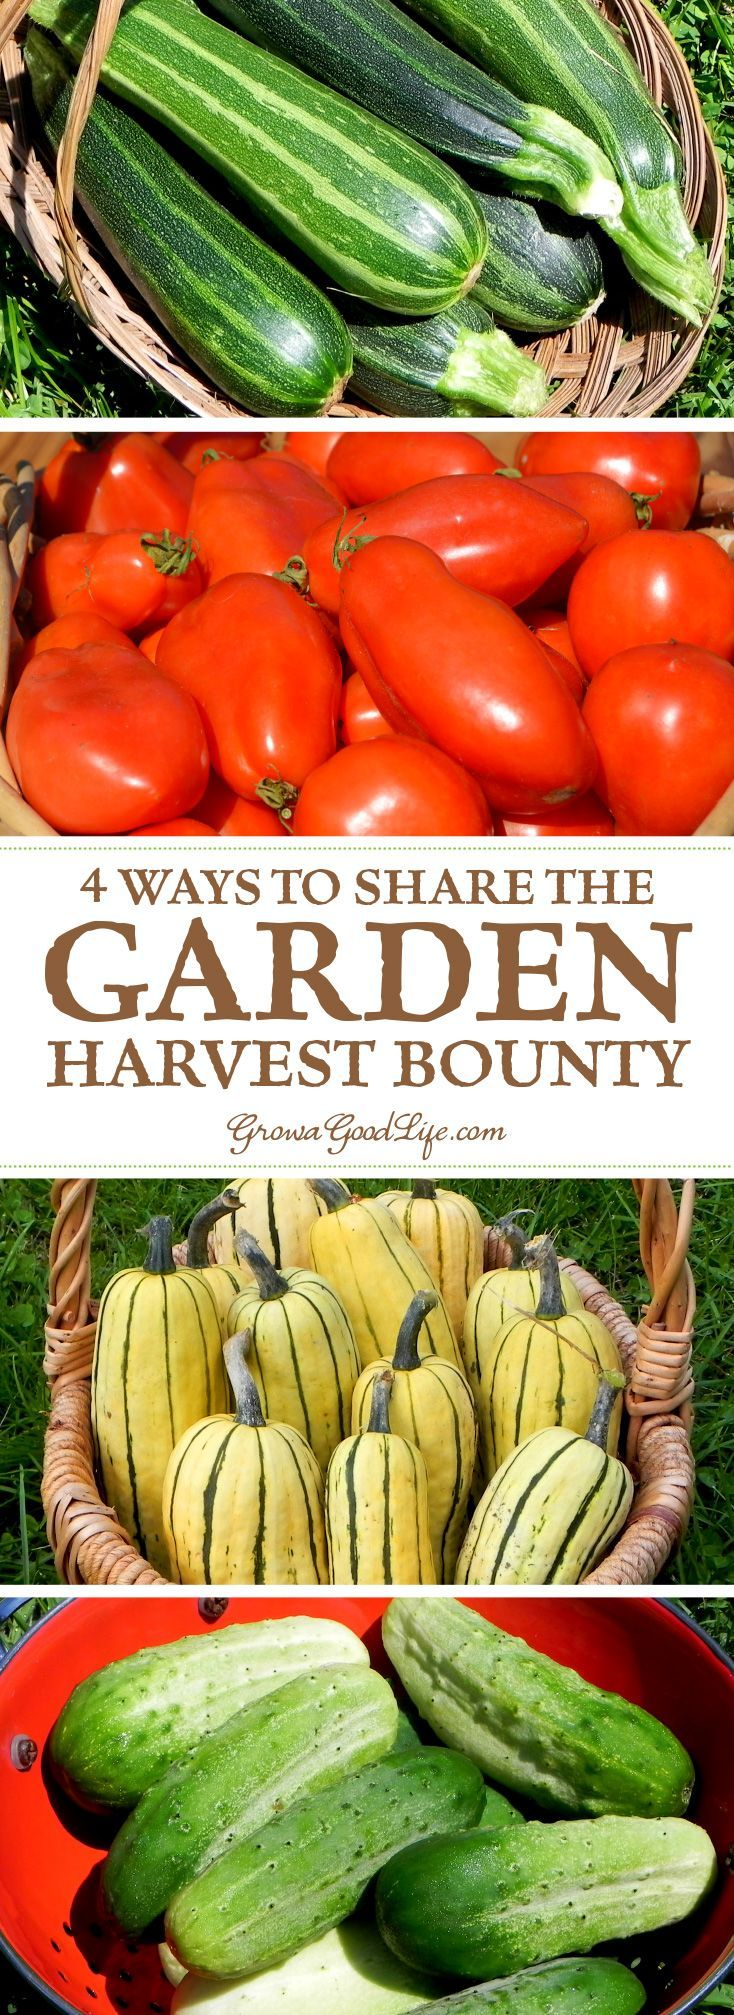 Food garden pictures - 4 Ways To Share The Garden Harvest Bounty